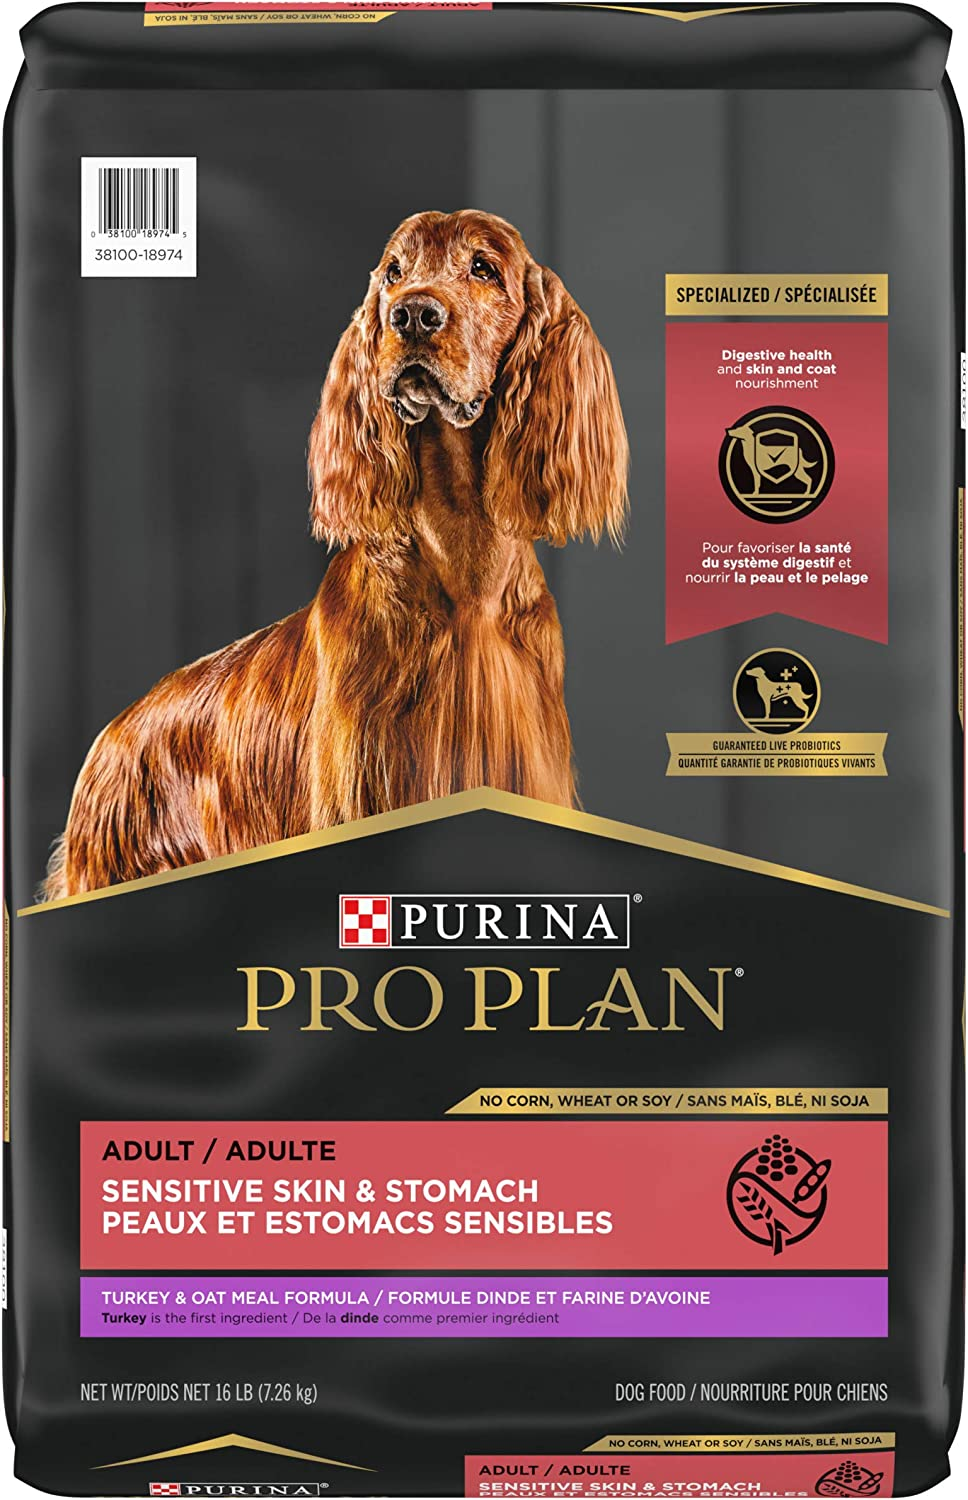 Purina Pro Plan Sensitive Skin and Stomach Dog Food with Probiotics for Dogs, Turkey & Oat Meal Formula - 16 lb. Bag